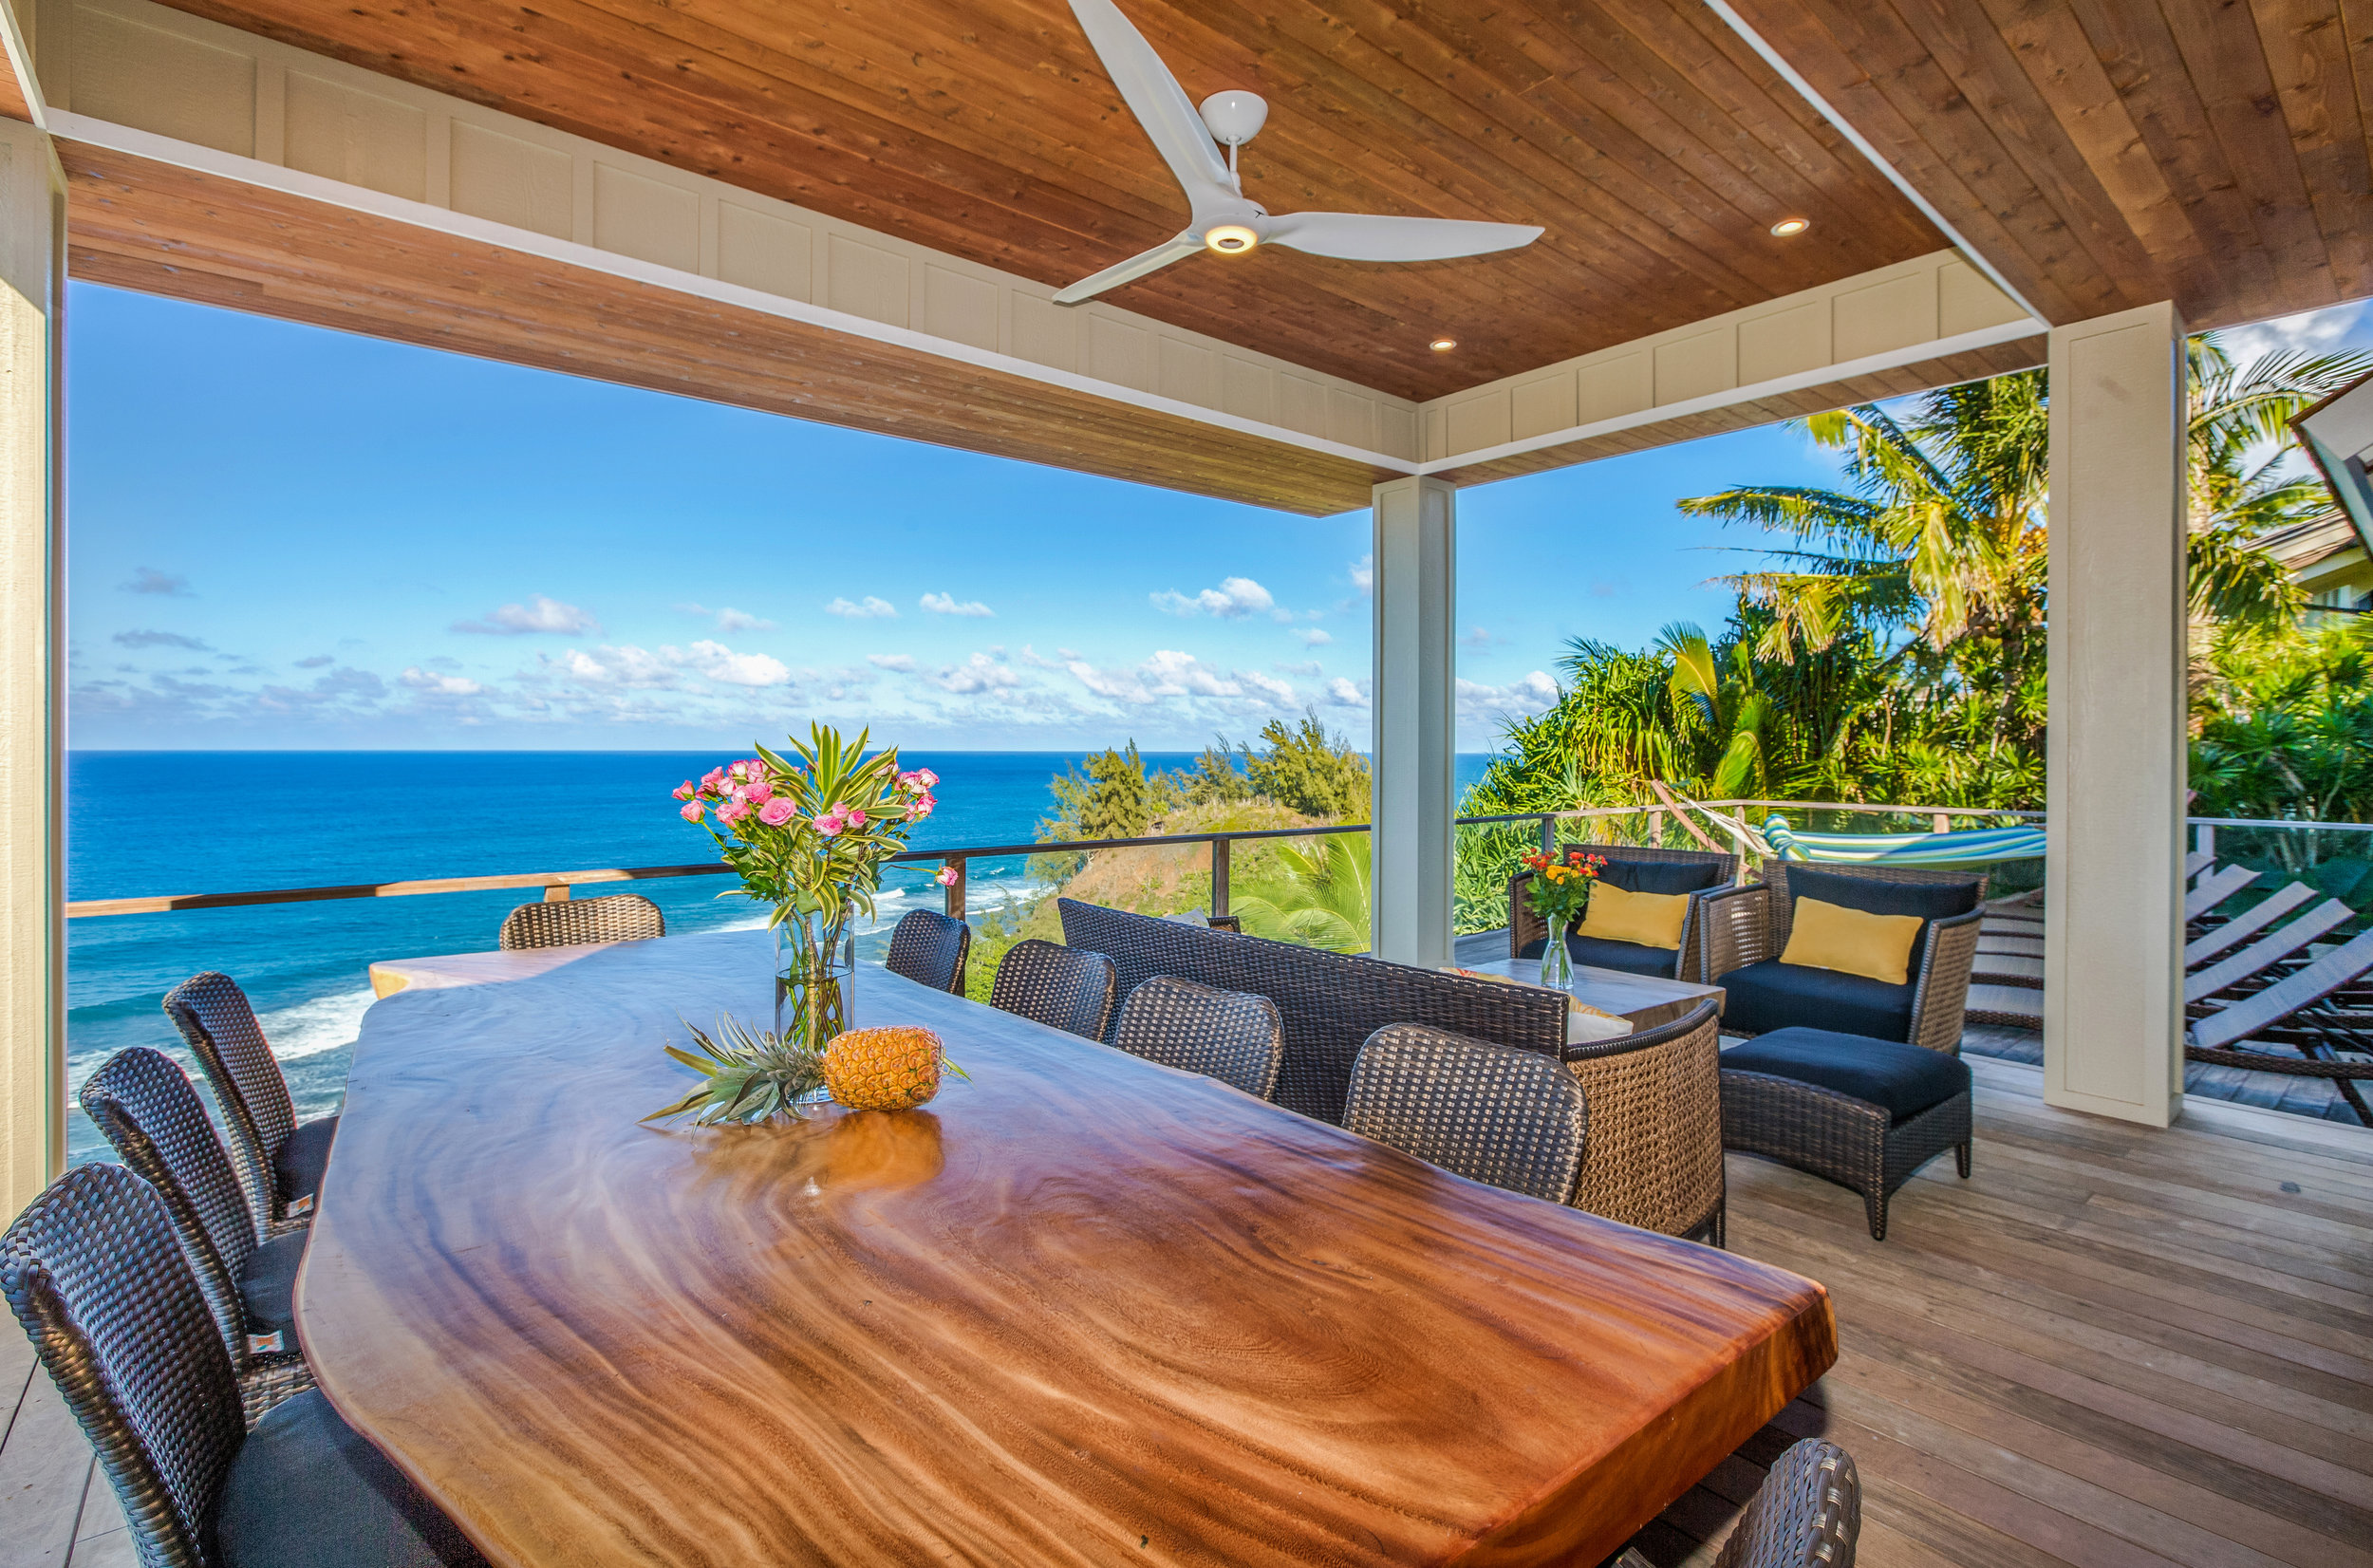 The 400sf roofed area of the 1200 sf oceanside lanai is the perfect location for a small wedding, vow renewal or other ceremony, or for a gathering of  family and friends.